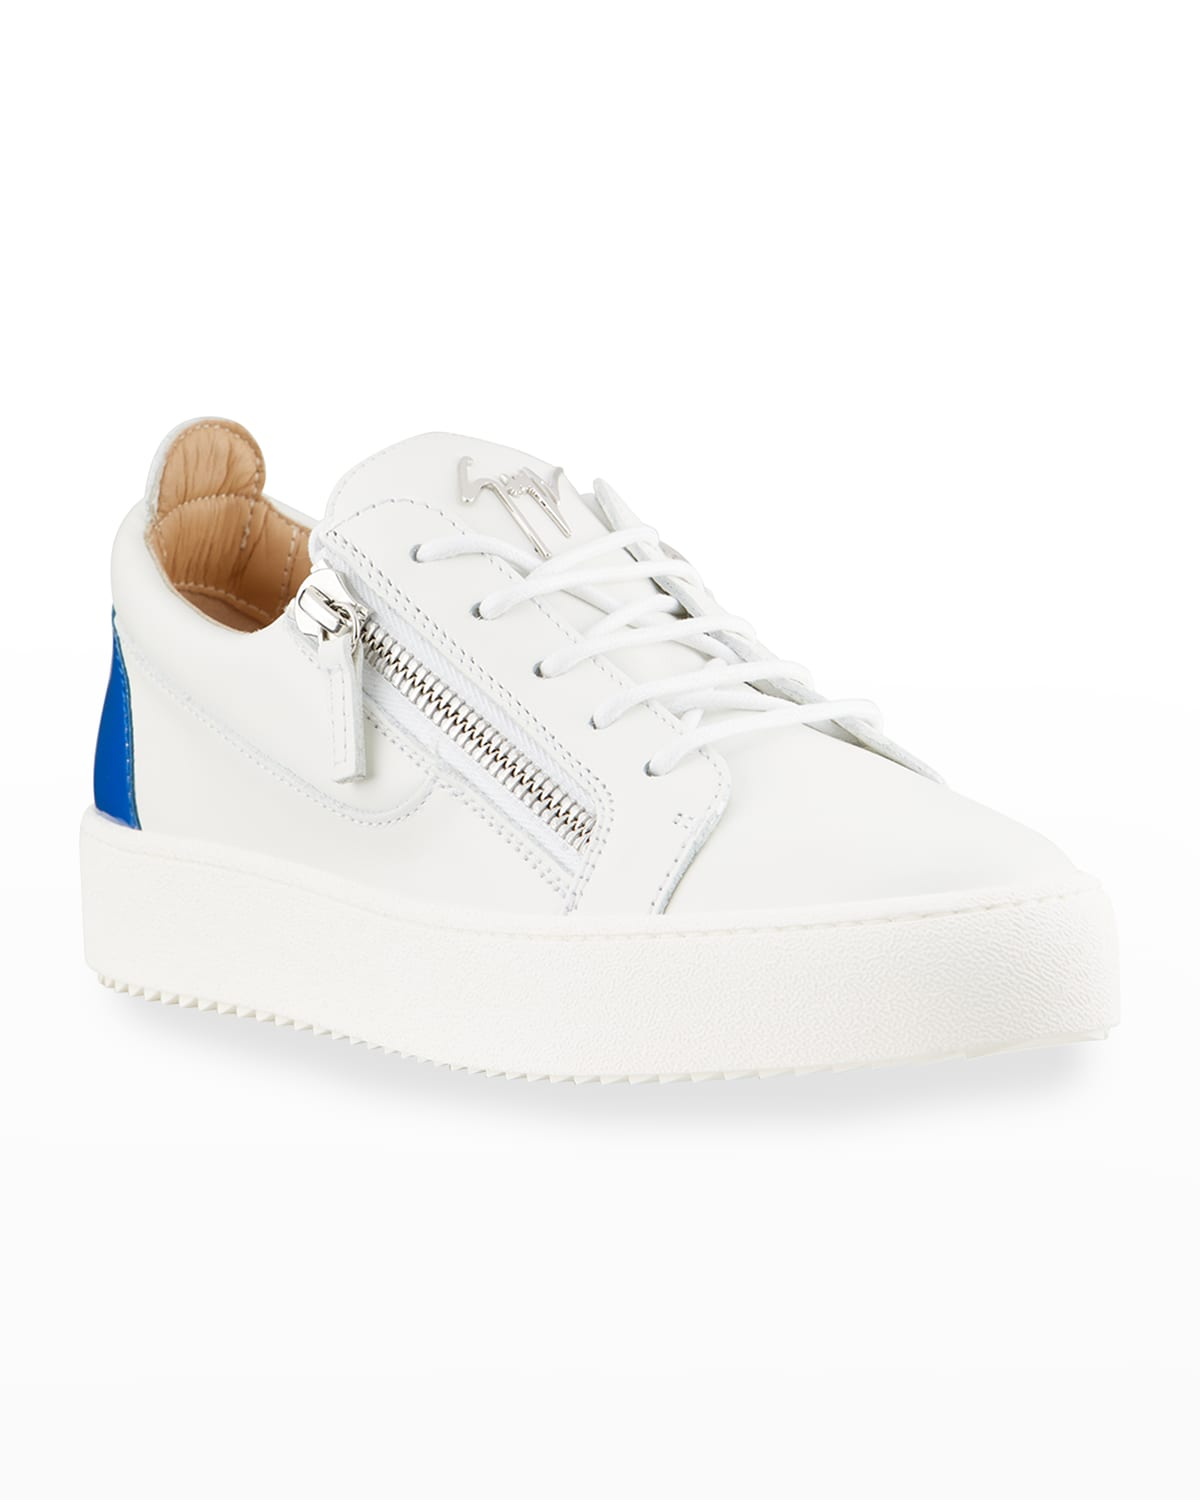 Men's May London Patent Leather Low-Top Sneakers